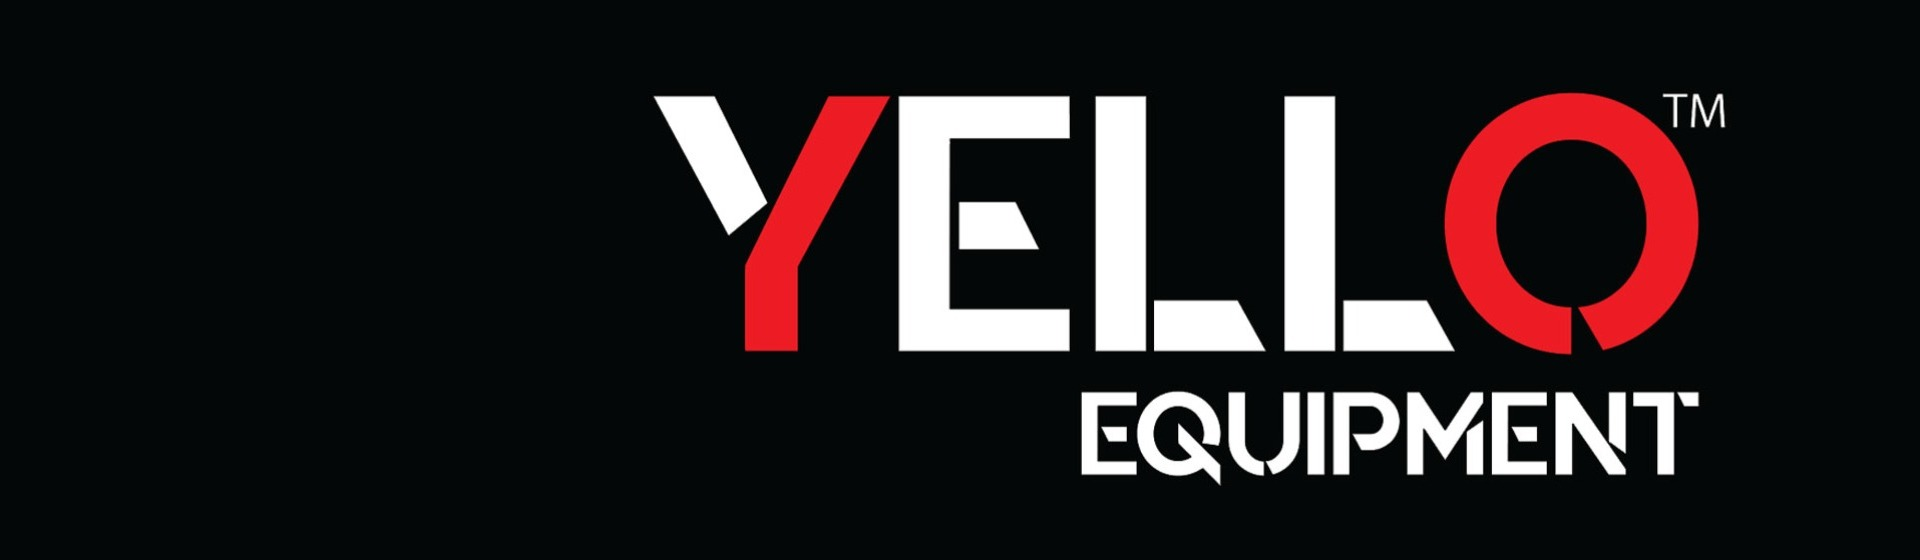 It's Official  -  Yello Equipment appointed as Authorised Dealer for Sany in Queensland and NSW